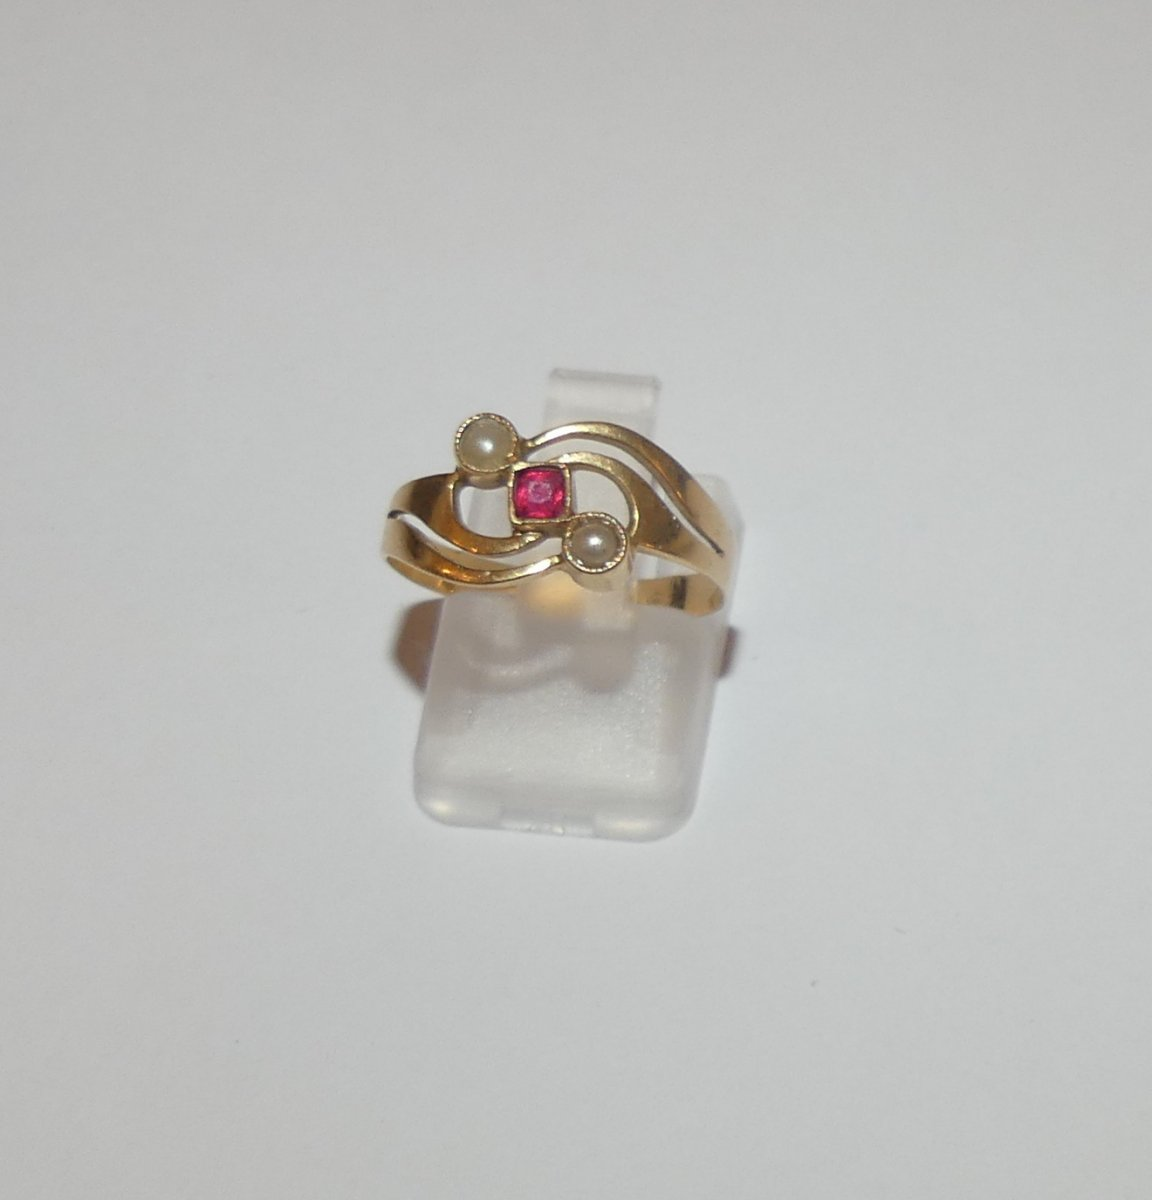 Old Gold And Pearls Ring